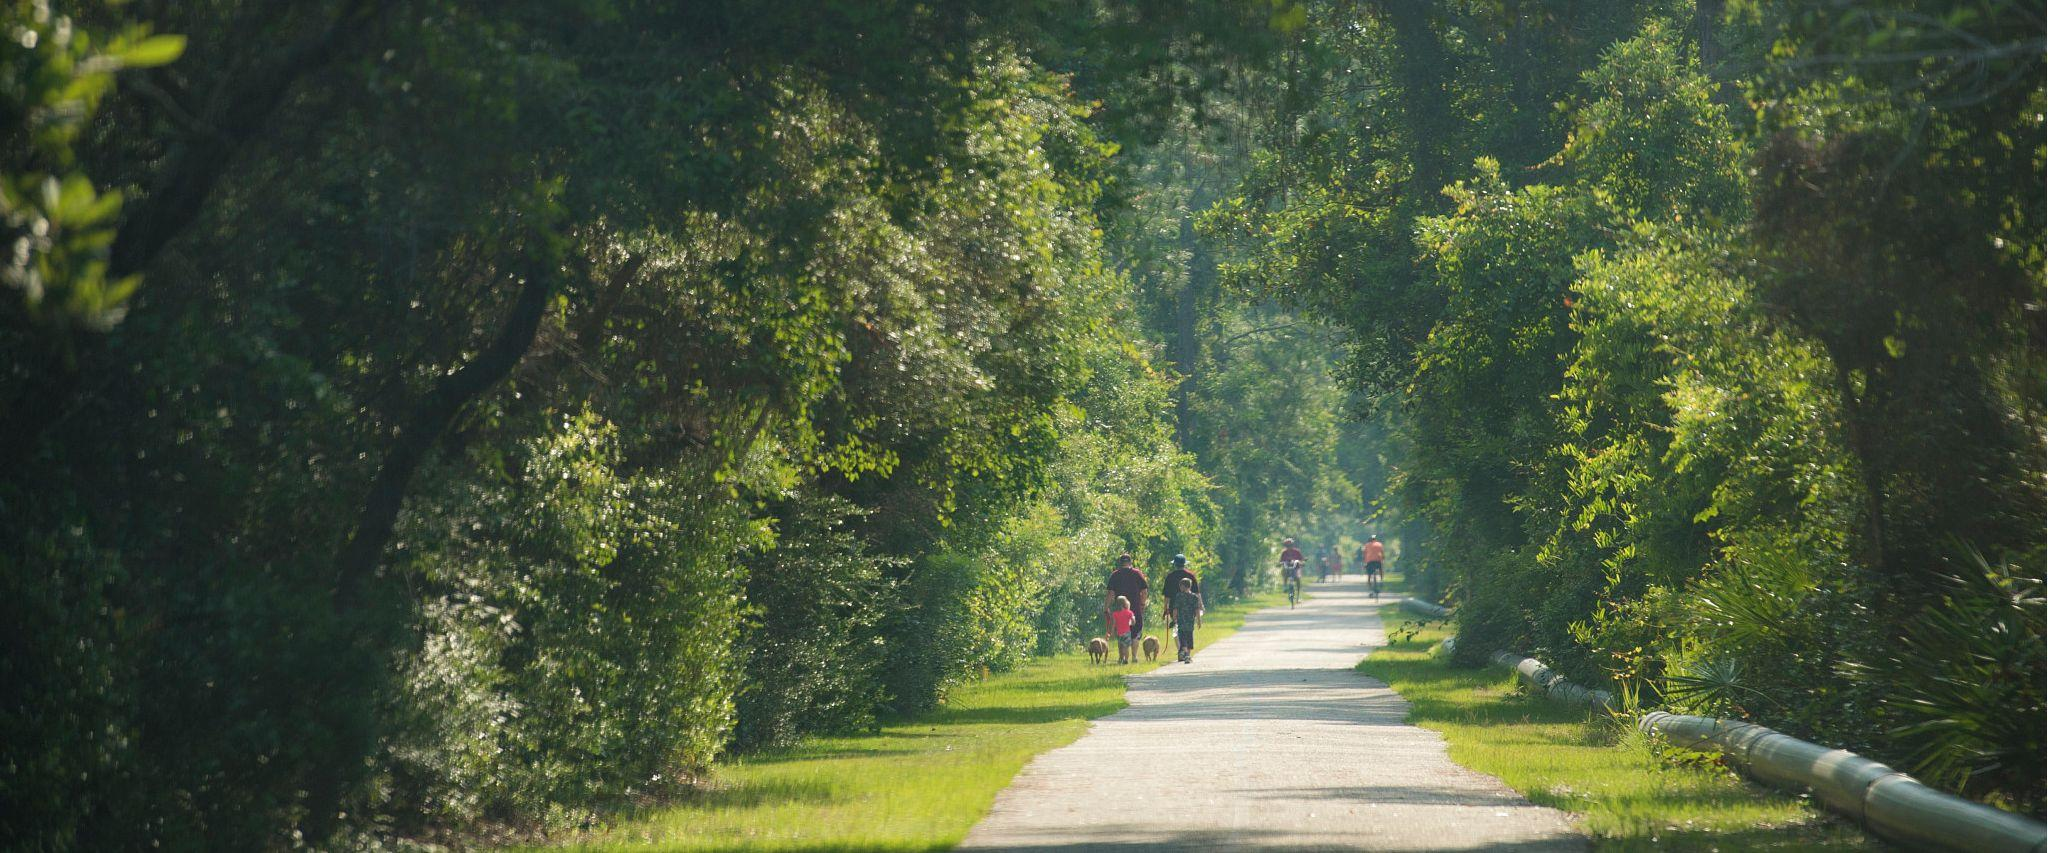 Explore nature at Gulf State Park